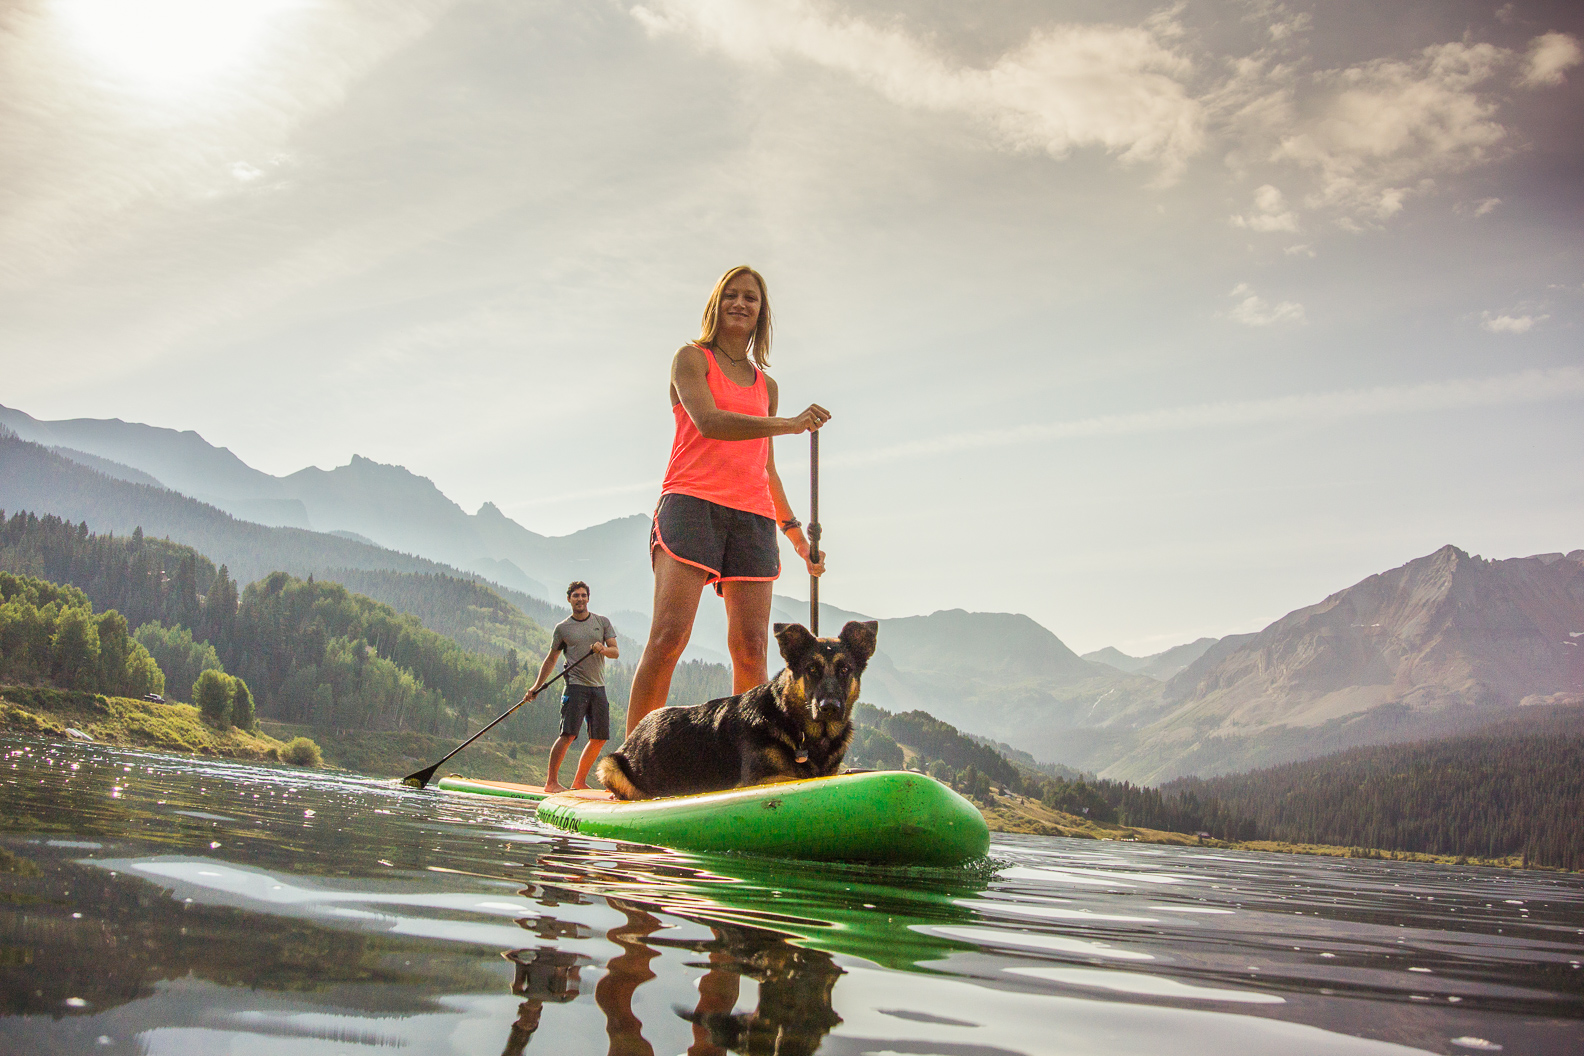 Stand-up paddleboarding in Telluride, CO (Courtesy Visit Telluride)